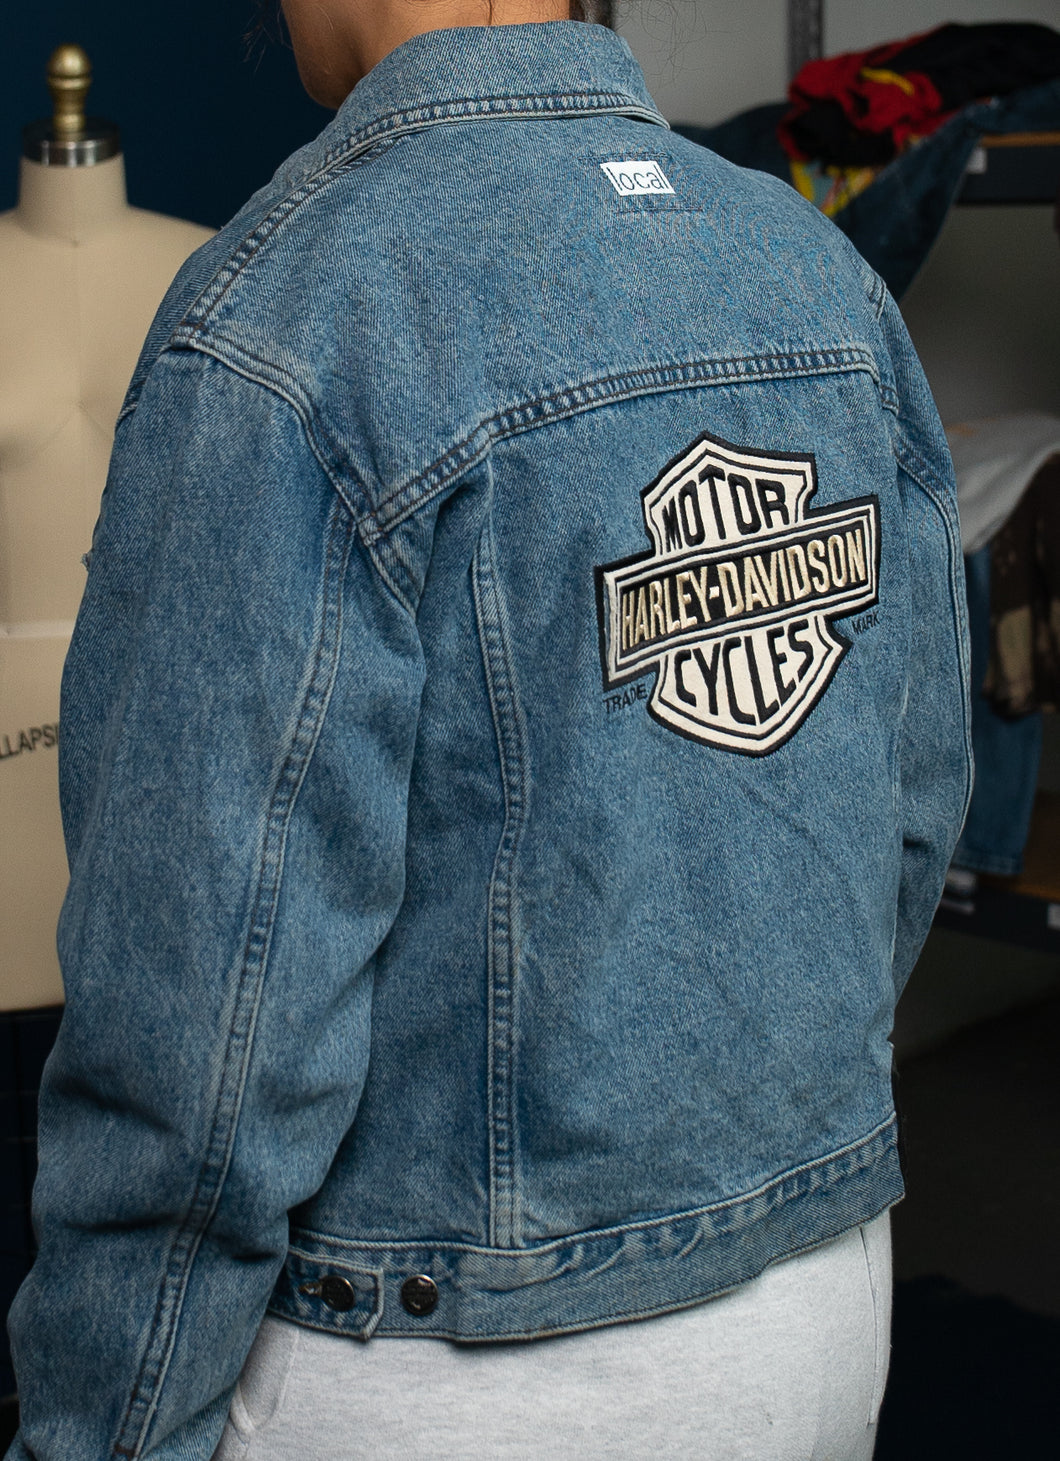 1 of 1 Vintage Harley-Davidson Denim Jacket